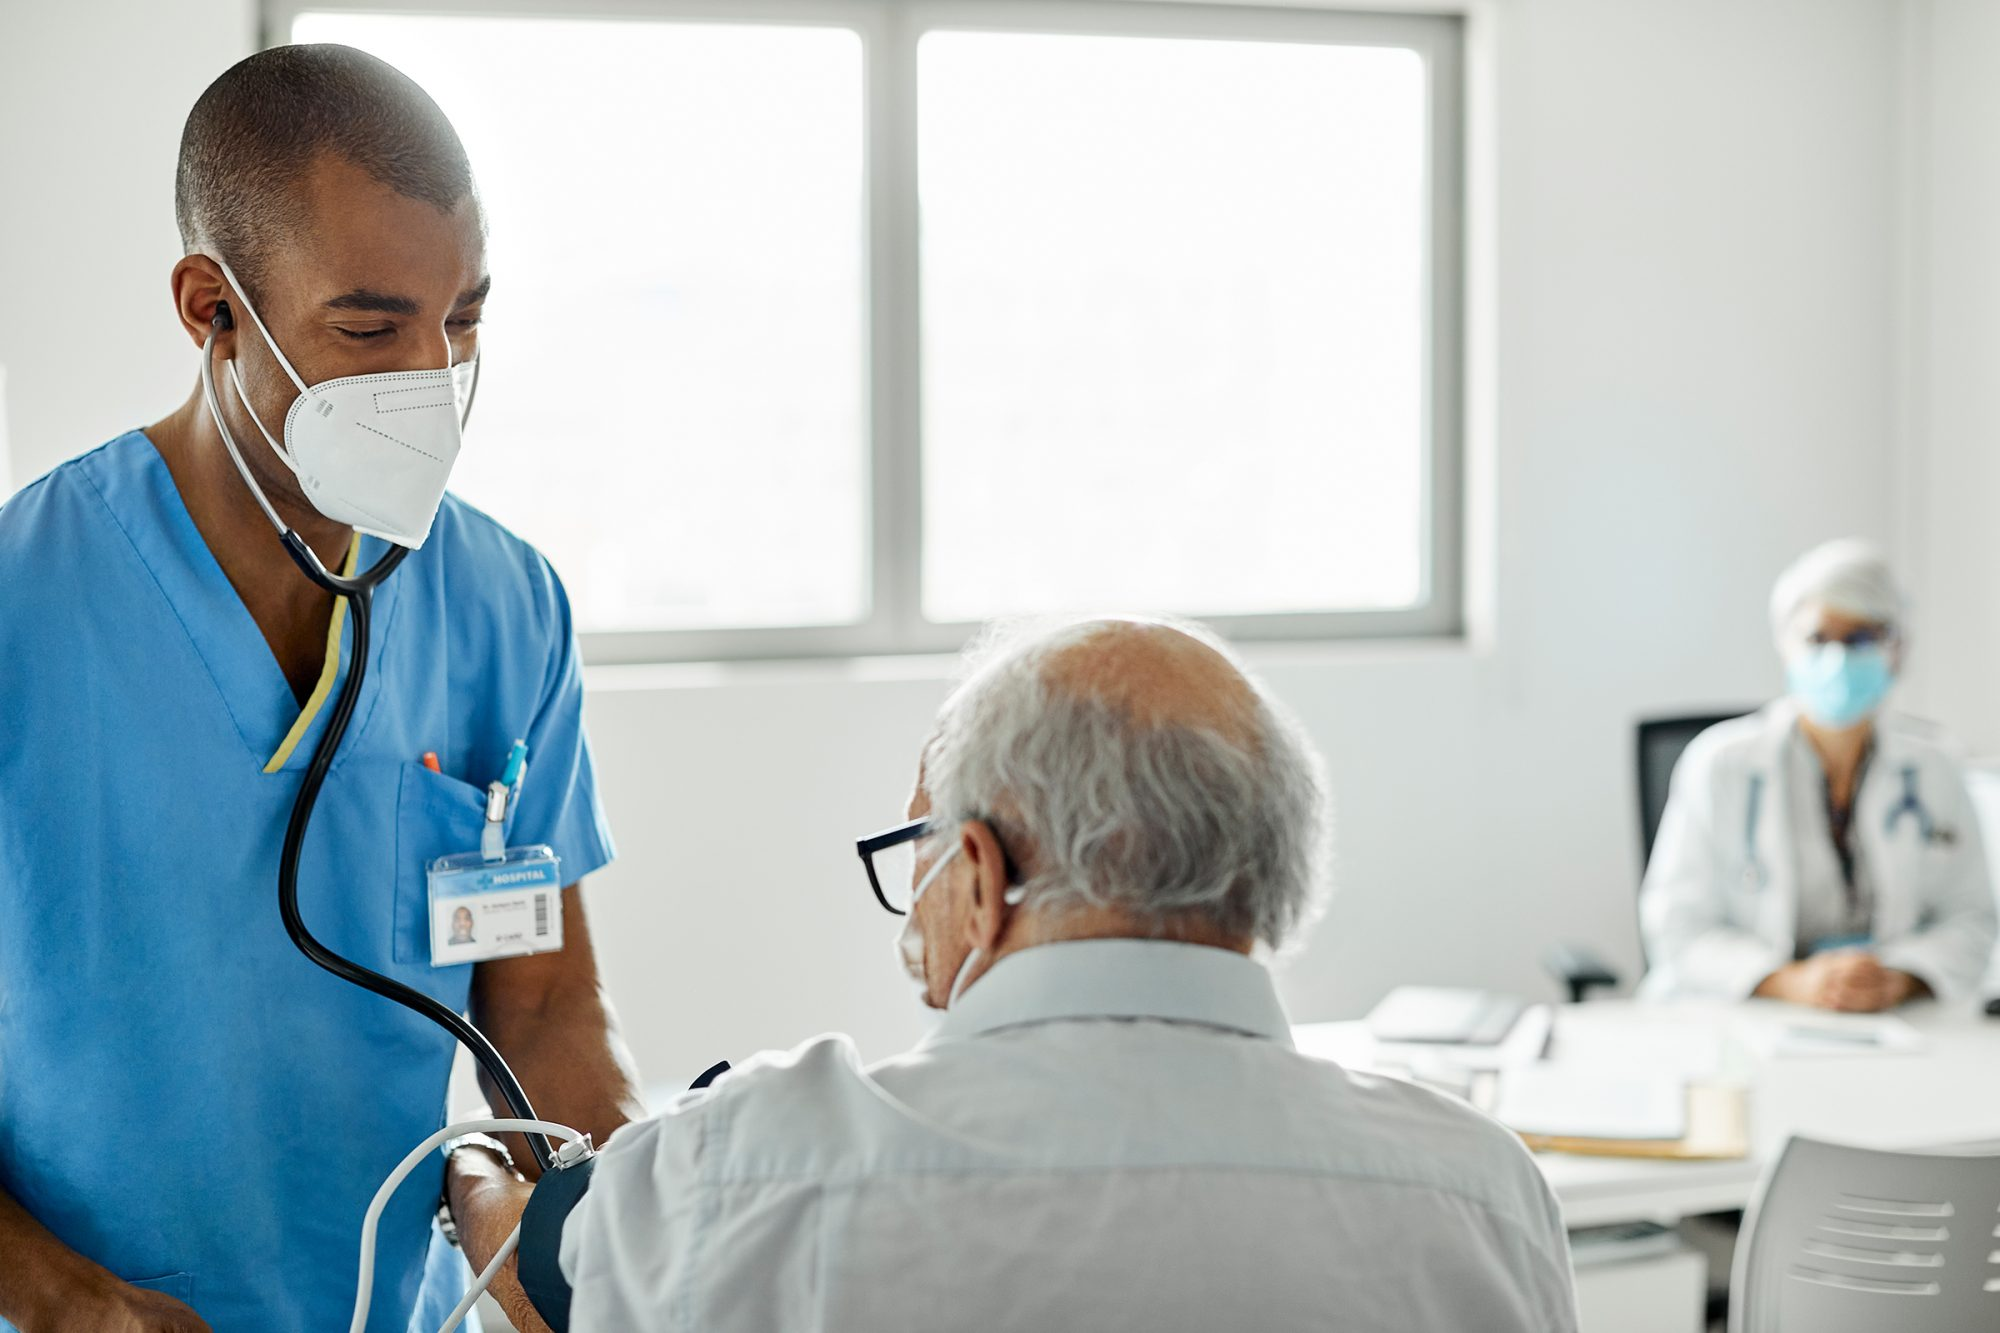 Nurse checking patient in clinic during COVID-19